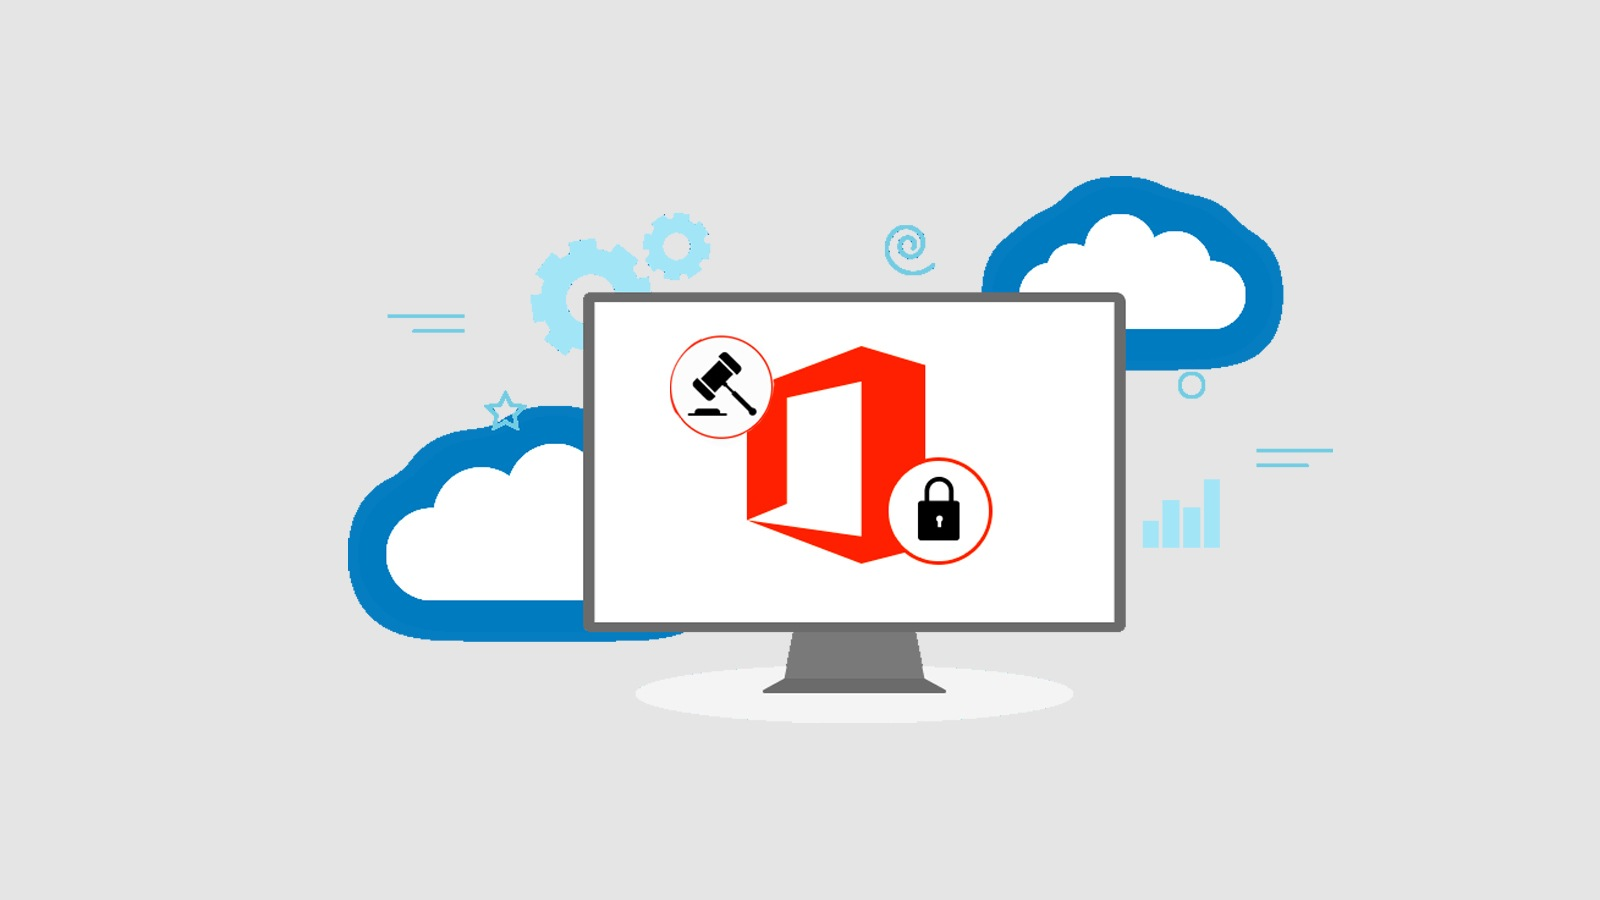 Security and Compliance Features in Office 365